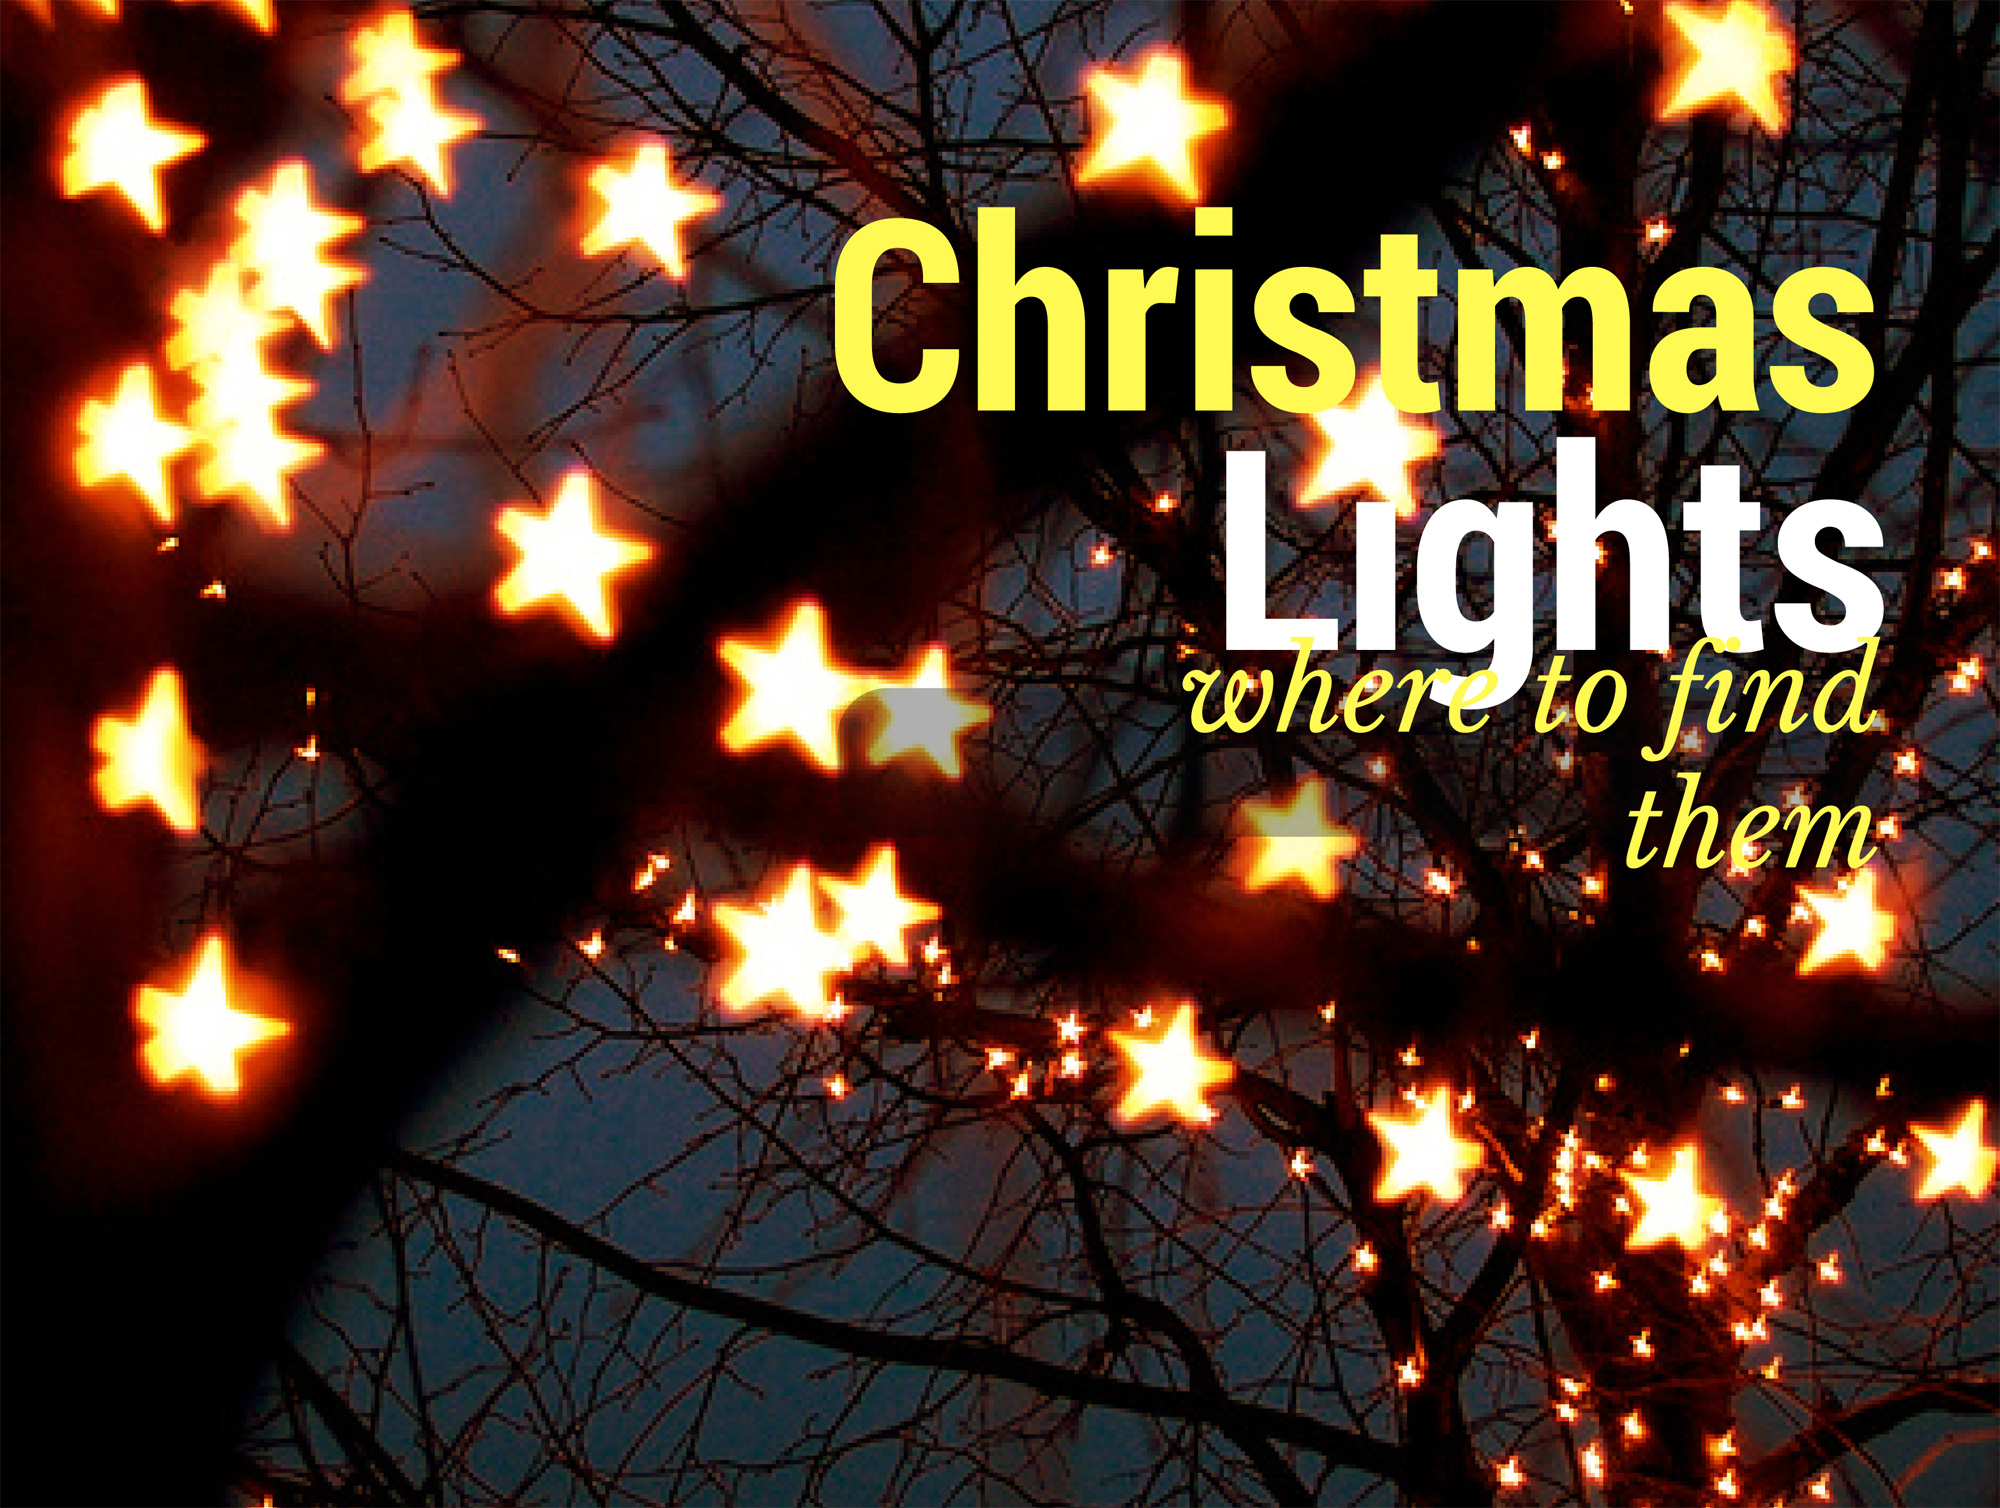 Williamsburg Christmas.Best Christmas Lights In Williamsburg And Surrounding Areas